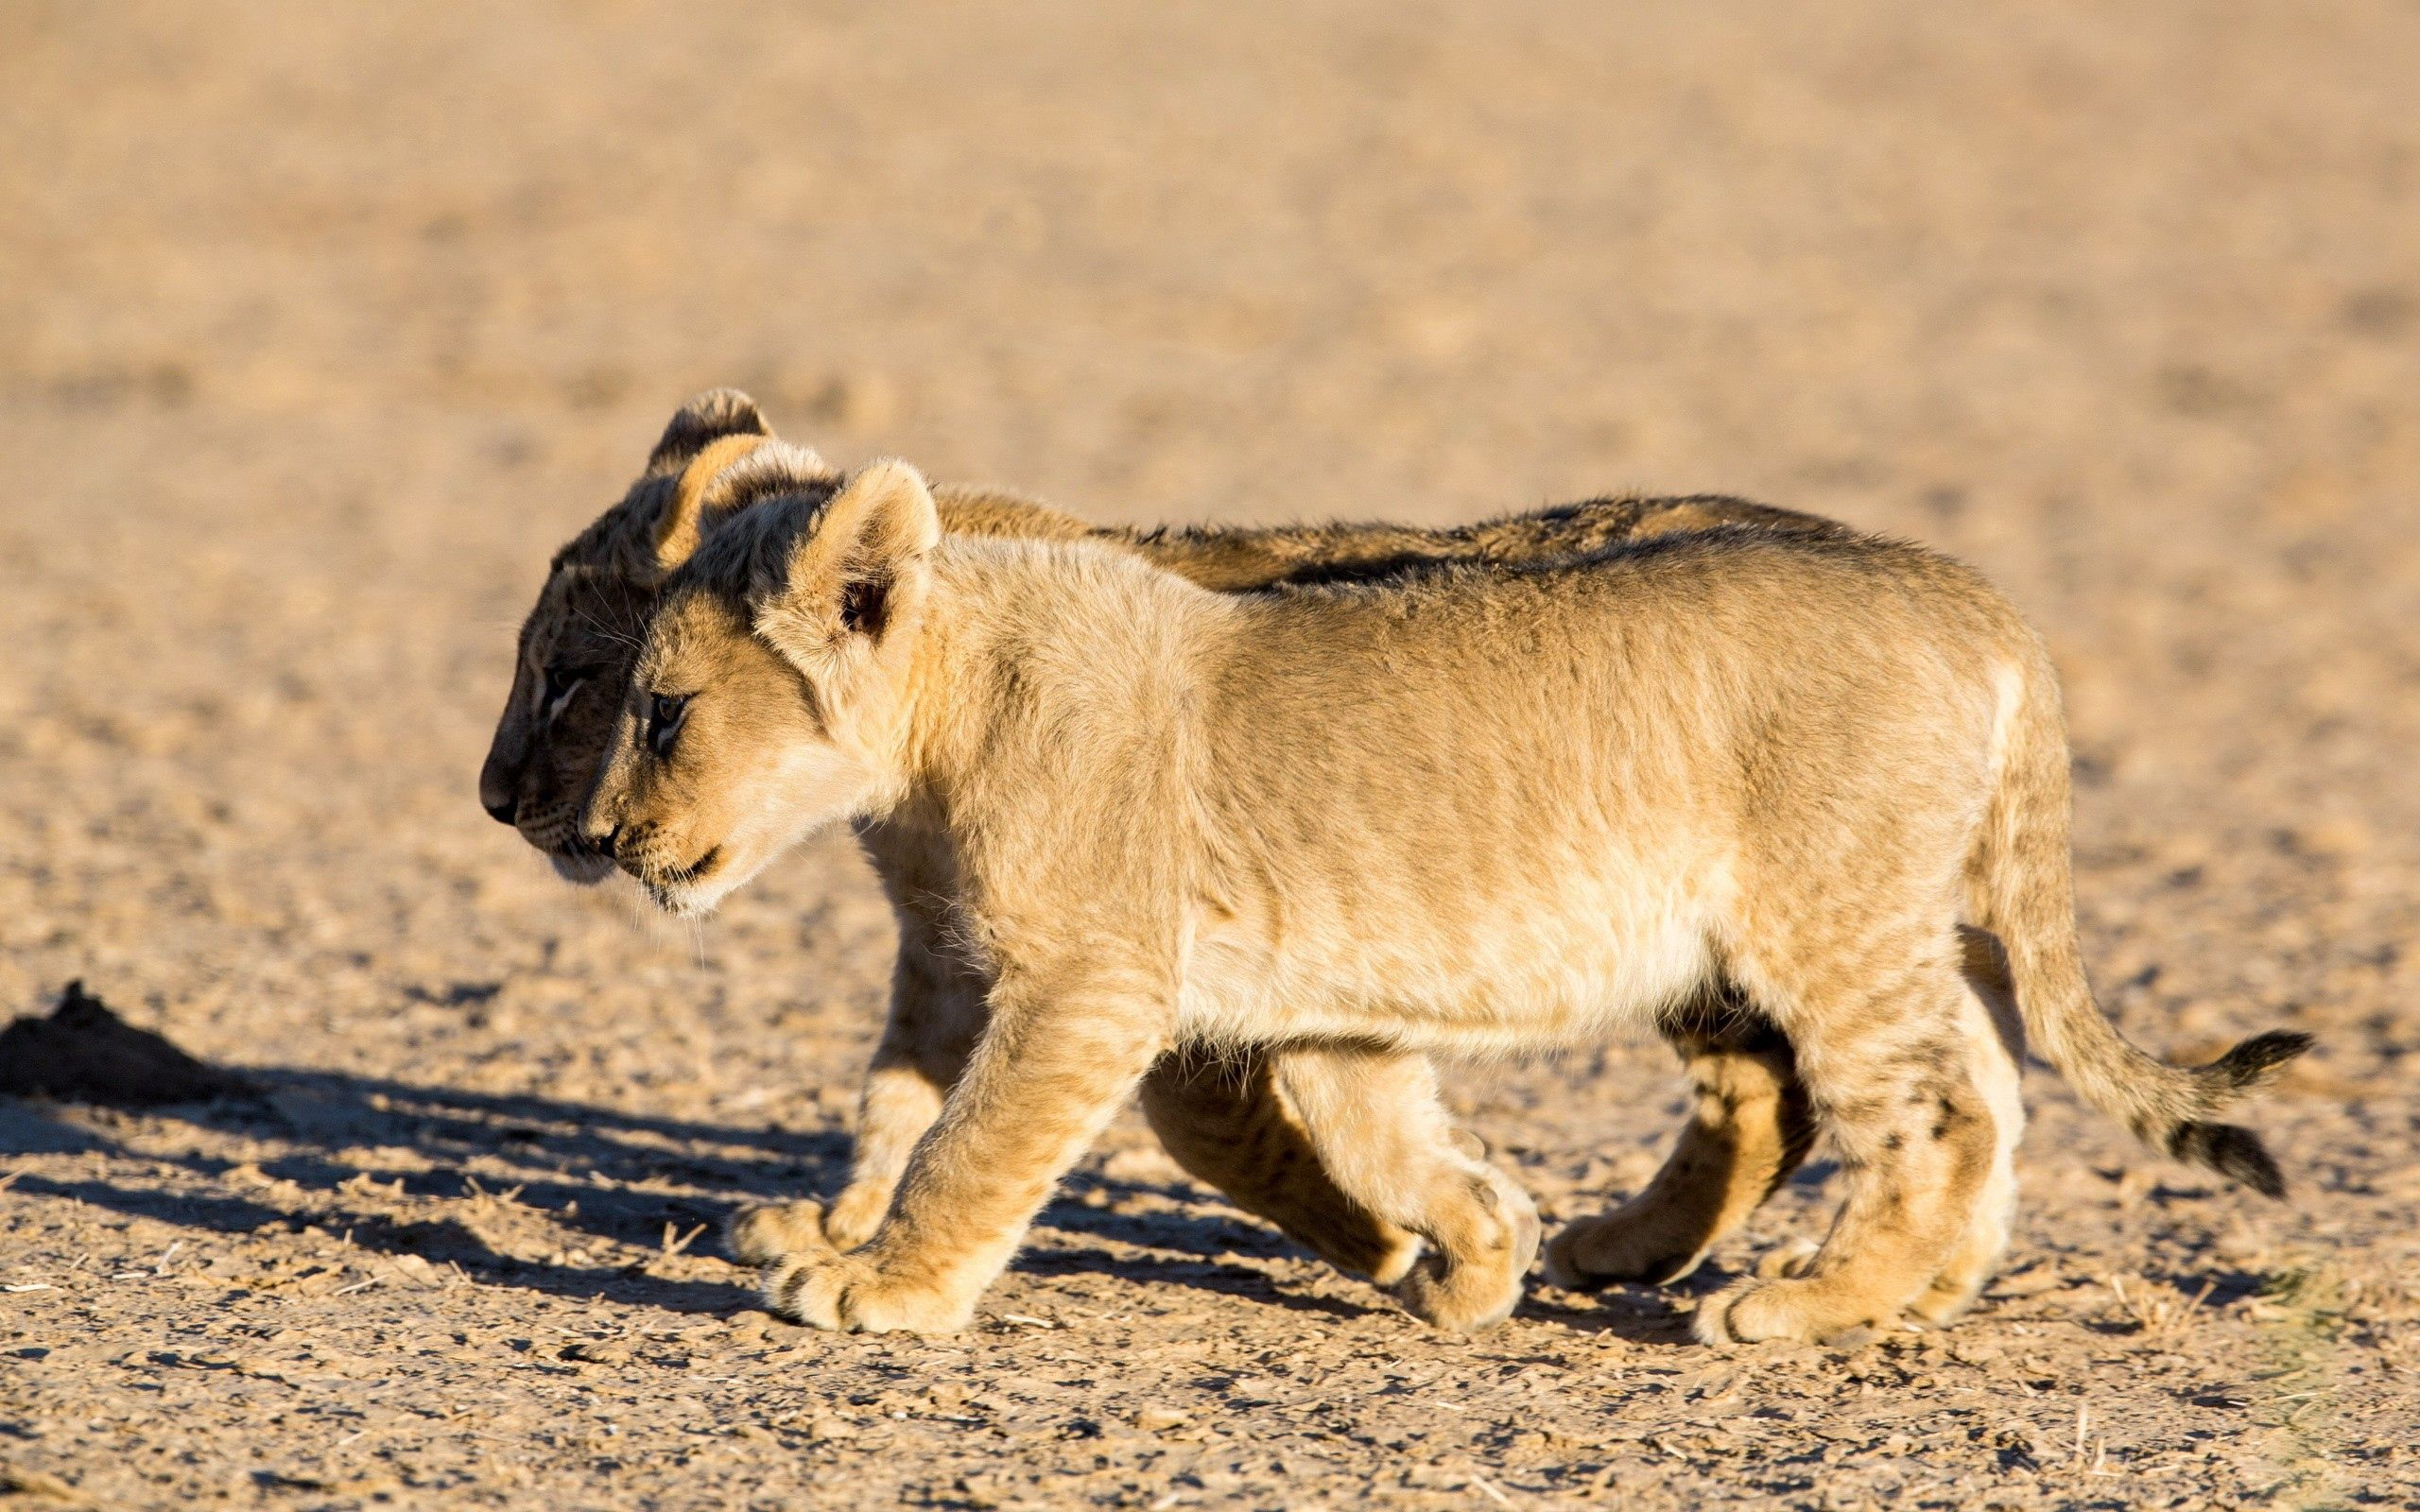 151940 download wallpaper Animals, Cubs, Young, Stroll, Couple, Pair, Shadow, Lions screensavers and pictures for free